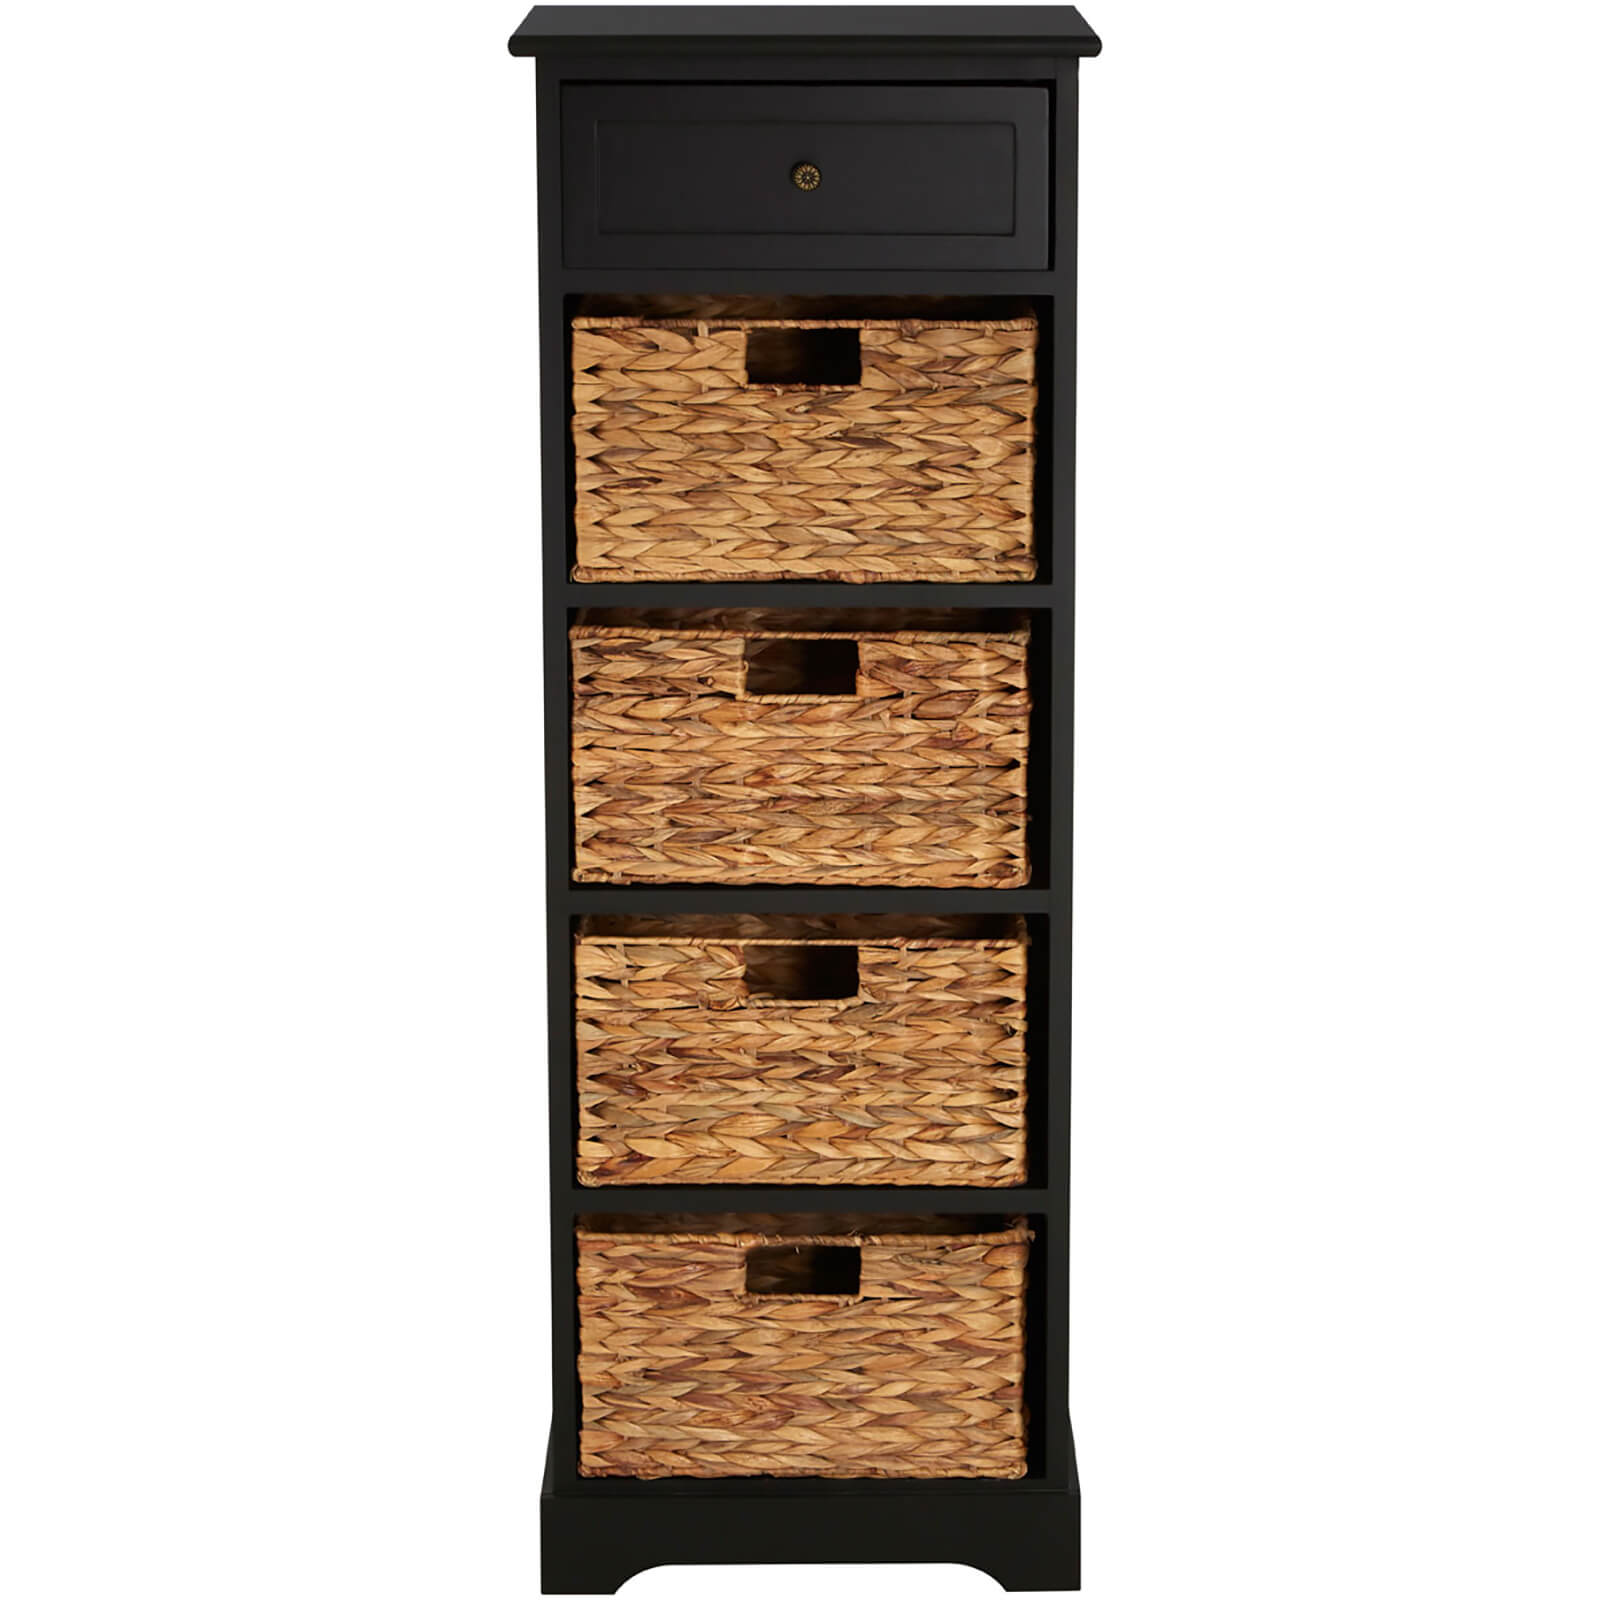 Vermont Tall Cabinet with One Drawer and Water Hyacinth Baskets - Black